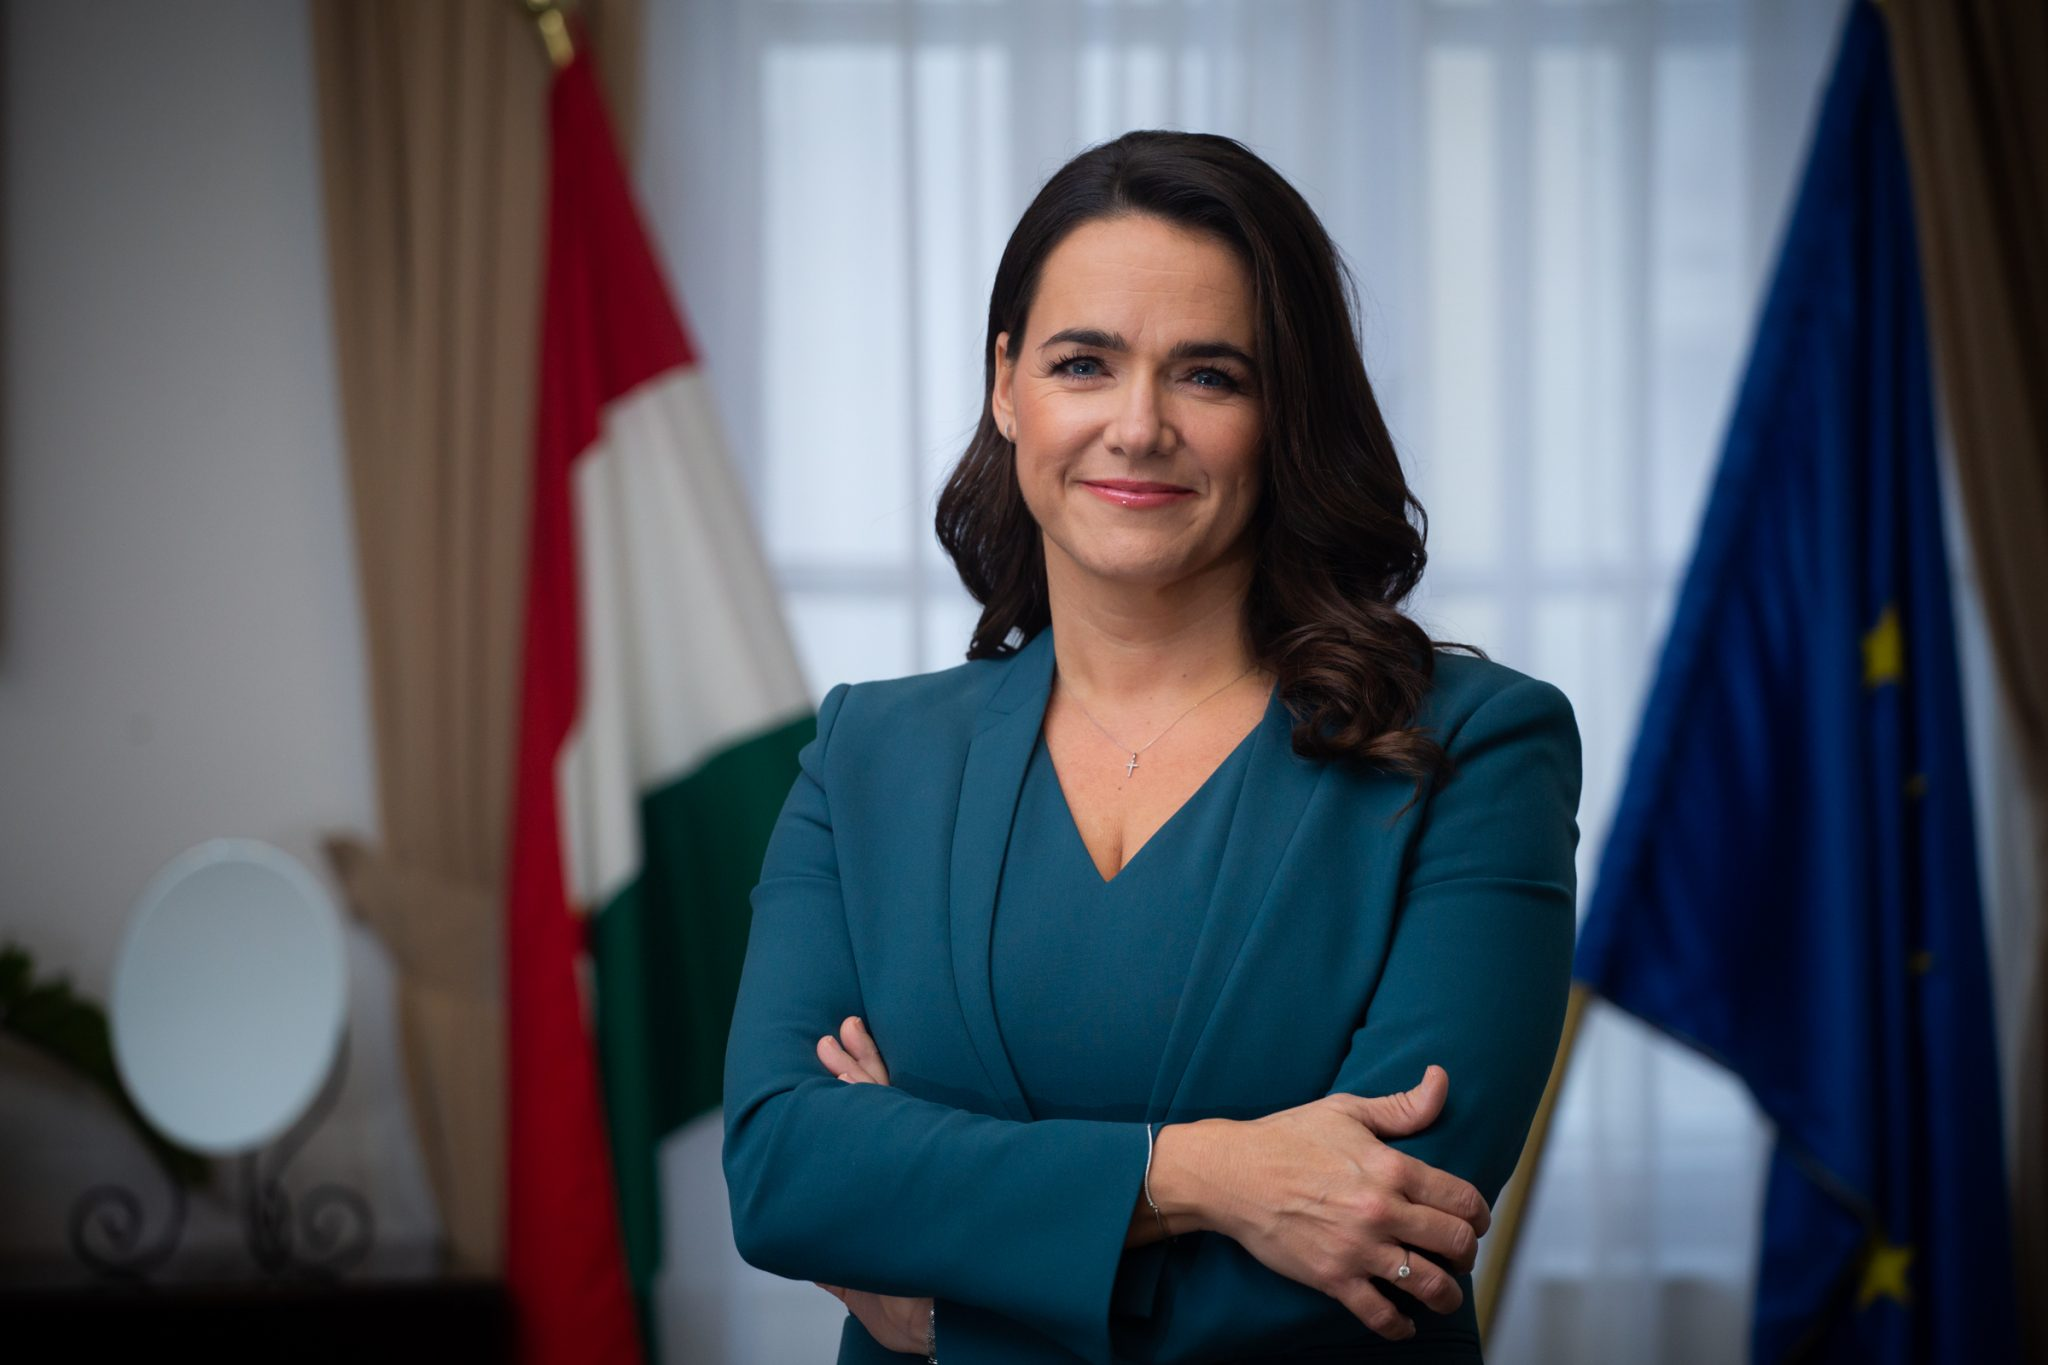 Interview with Katalin Novák, Hungarian Minister for Families